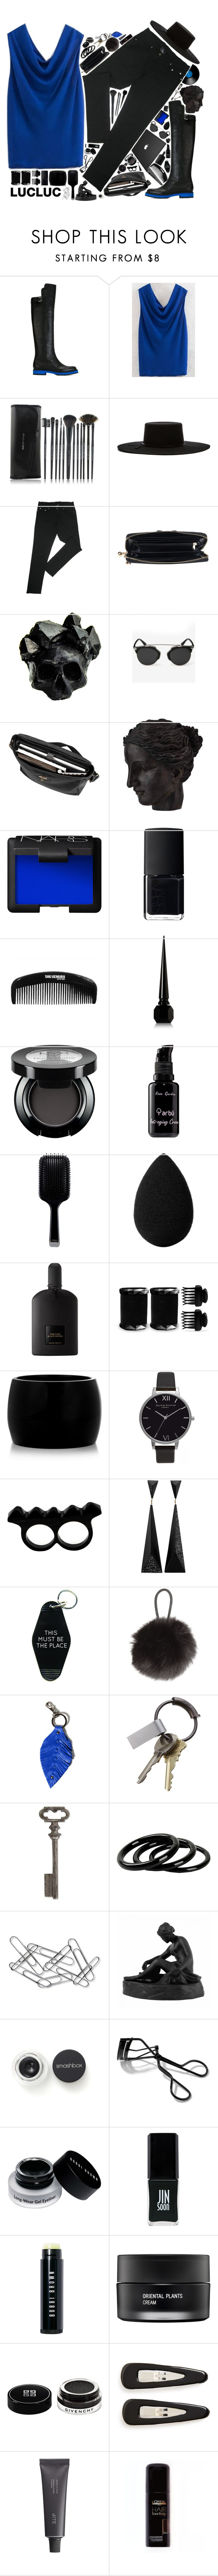 """Mostly Black"" by ritaflagy ❤ liked on Polyvore featuring Fendi, Brixton, Macabre Gadgets, Mulberry, Ren-Wil, NARS Cosmetics, arbÅ«, GHD, beautyblender and Tom Ford"